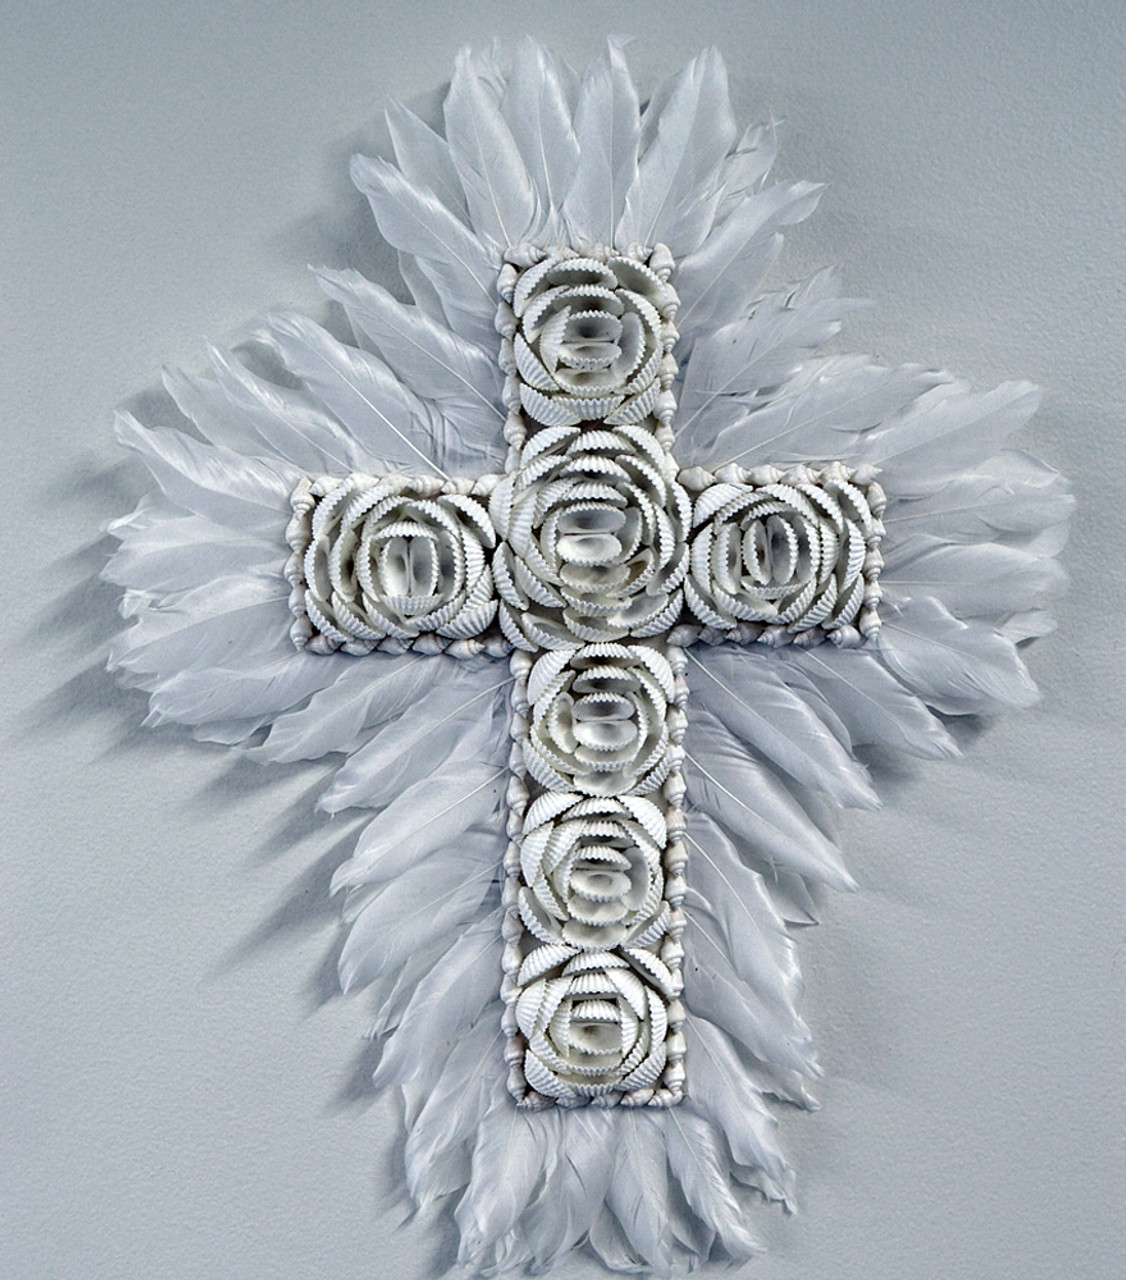 JUJU shell Feather cross wall art home decor religious cross Feather dimensions 40cm x 50cm Shell dimensions 27cm x 38cm